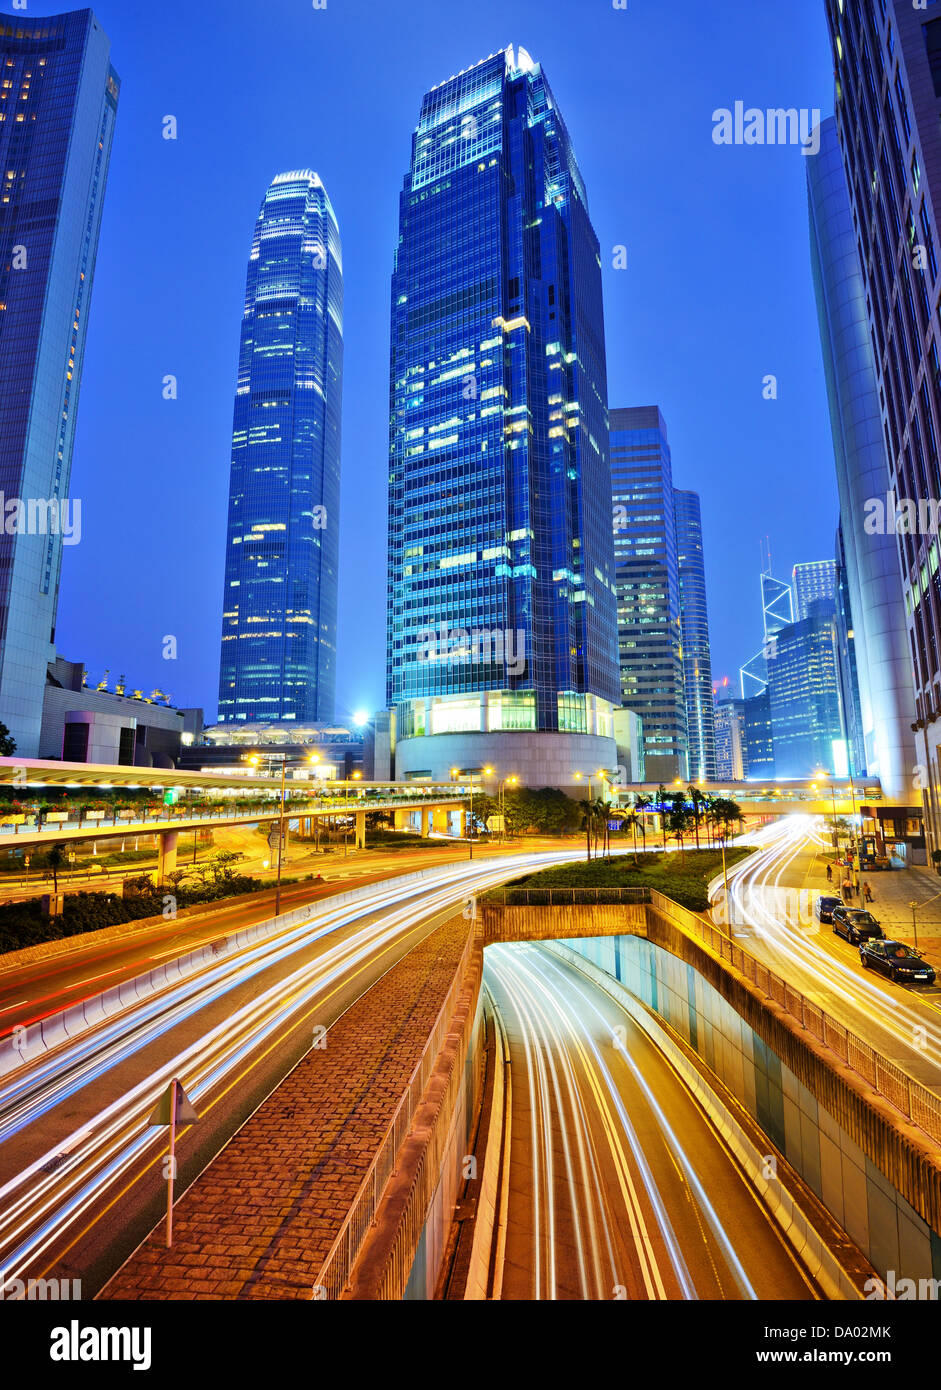 Financial buildings on Hong Kong Island. - Stock Image